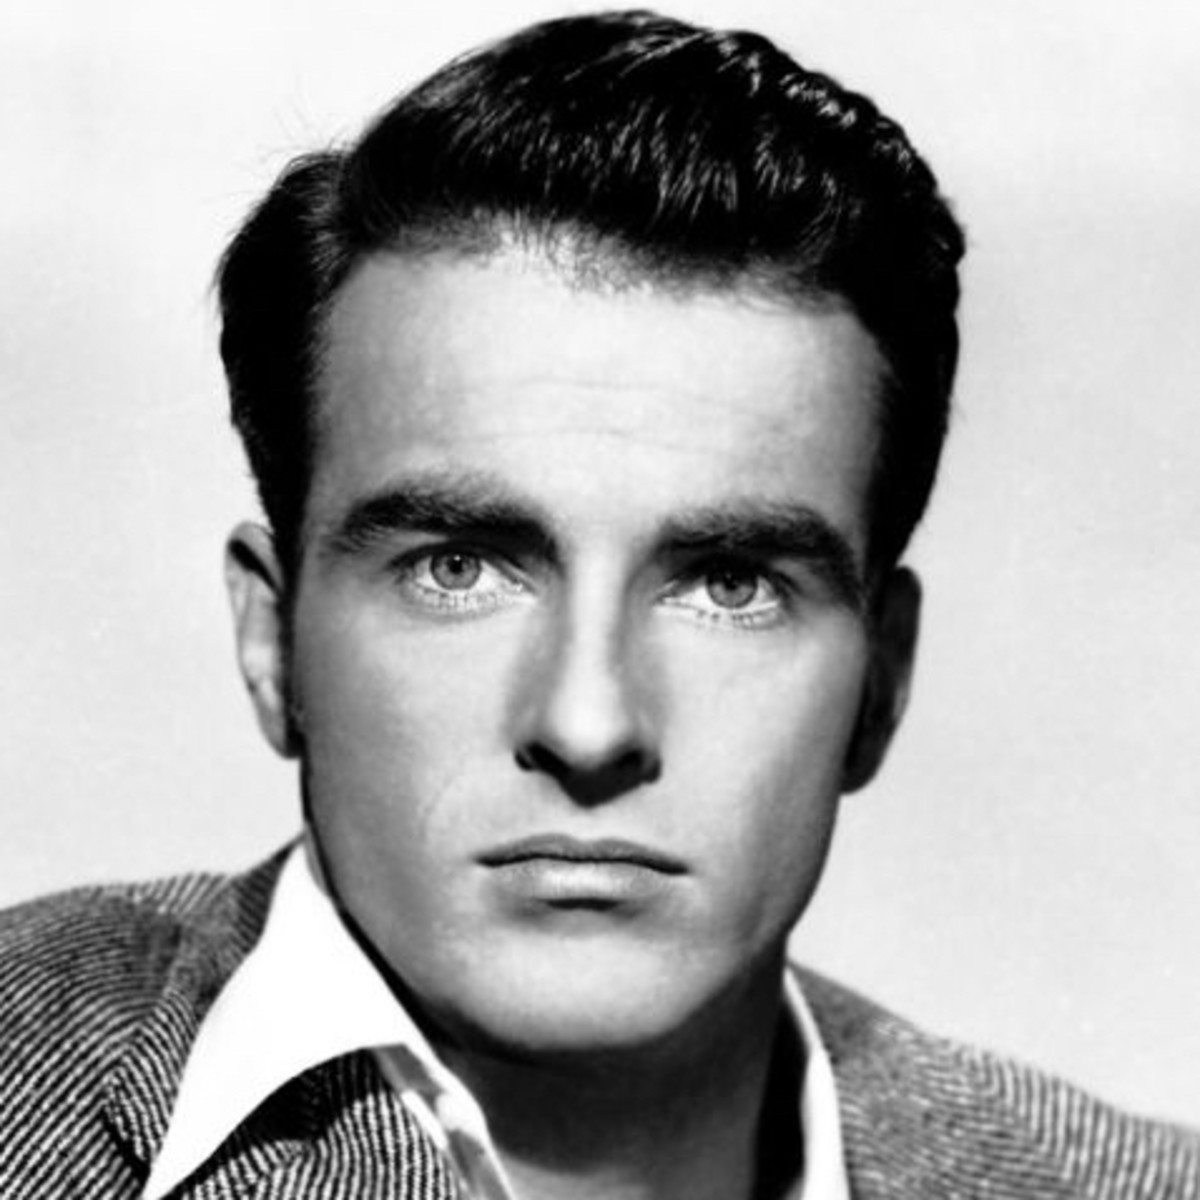 Montgomery Clift Film Actor Actor Biography